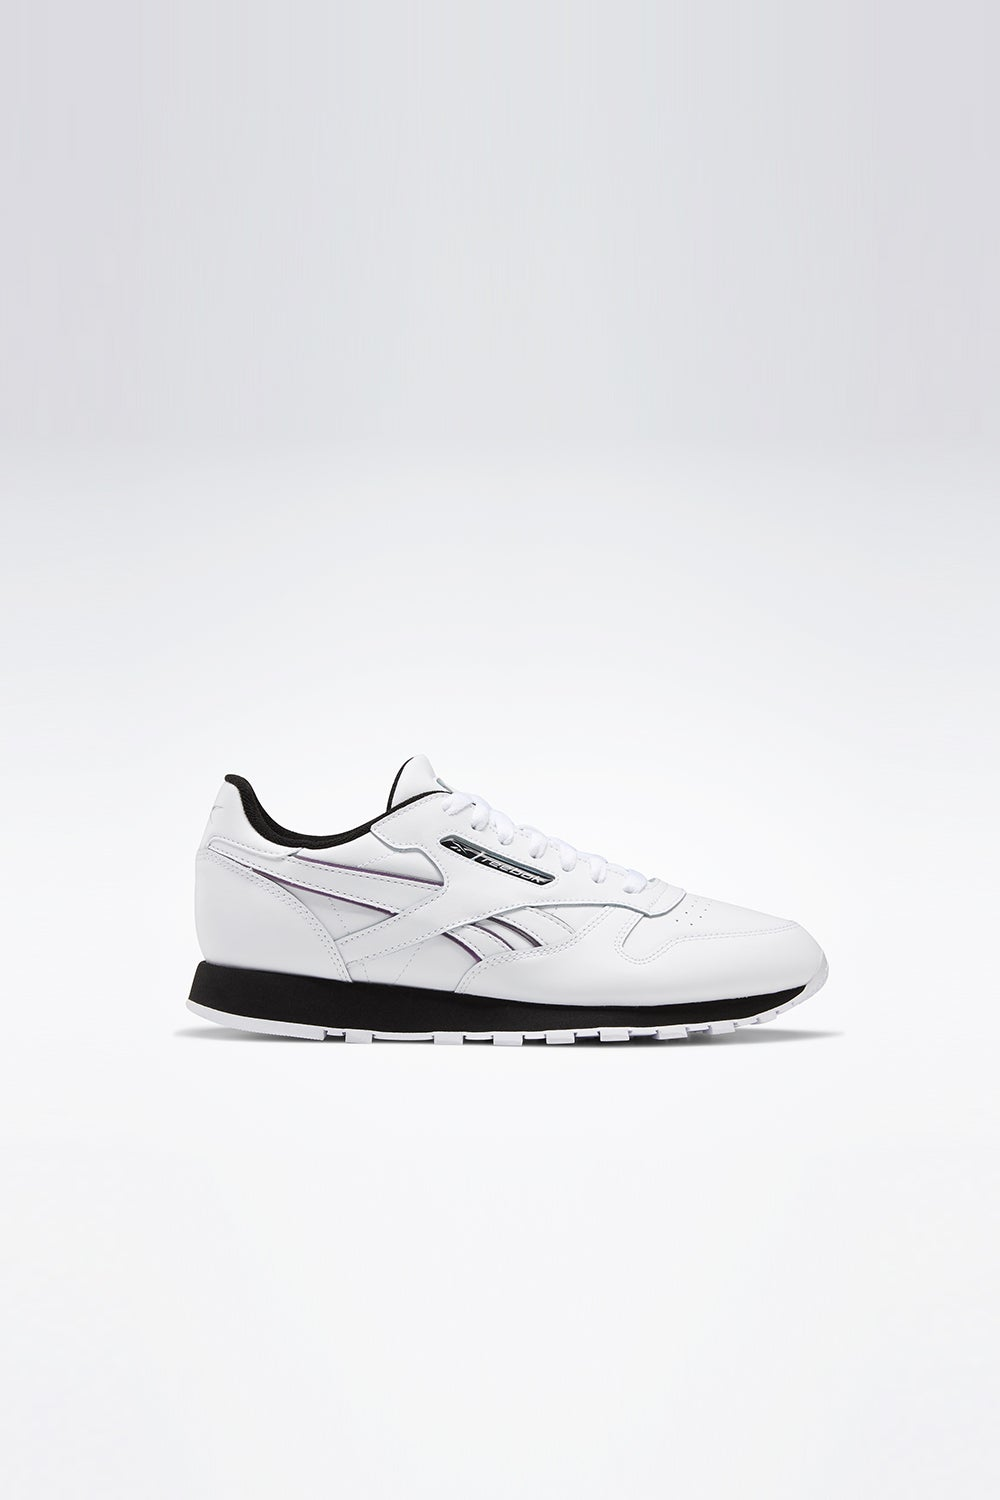 Reebok Classic Leather White/Black/Silver Metal